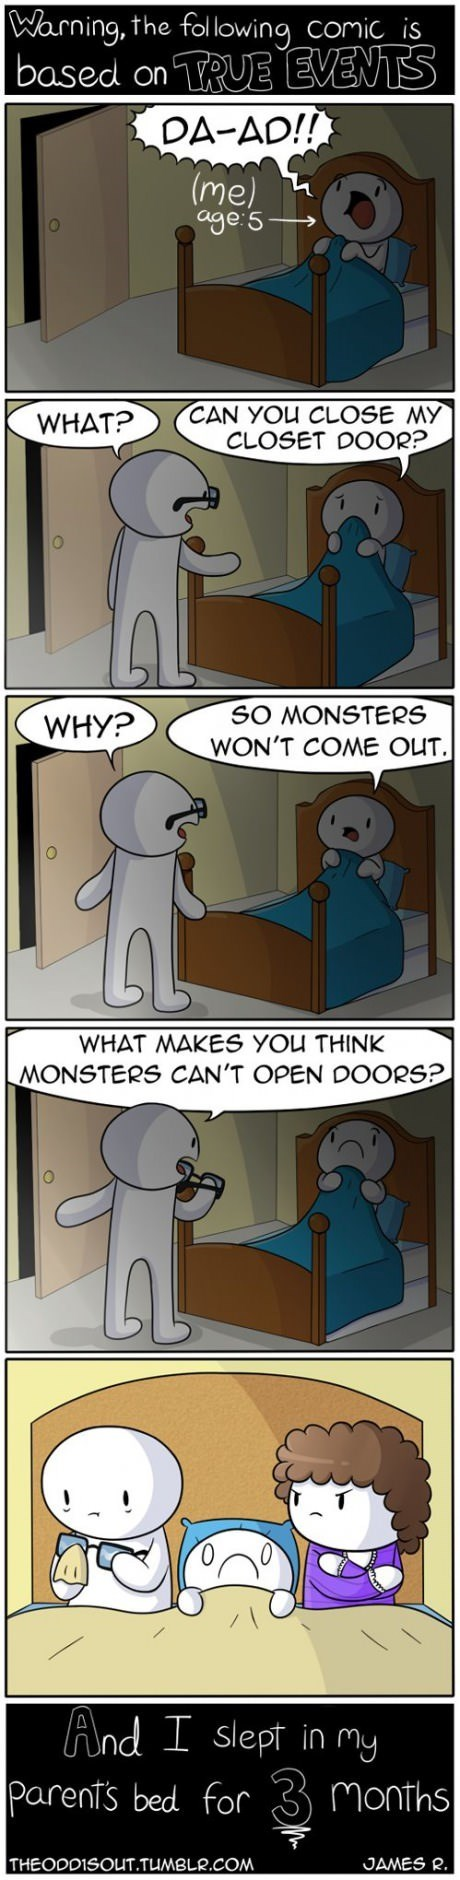 kids,monster,parenting,web comics